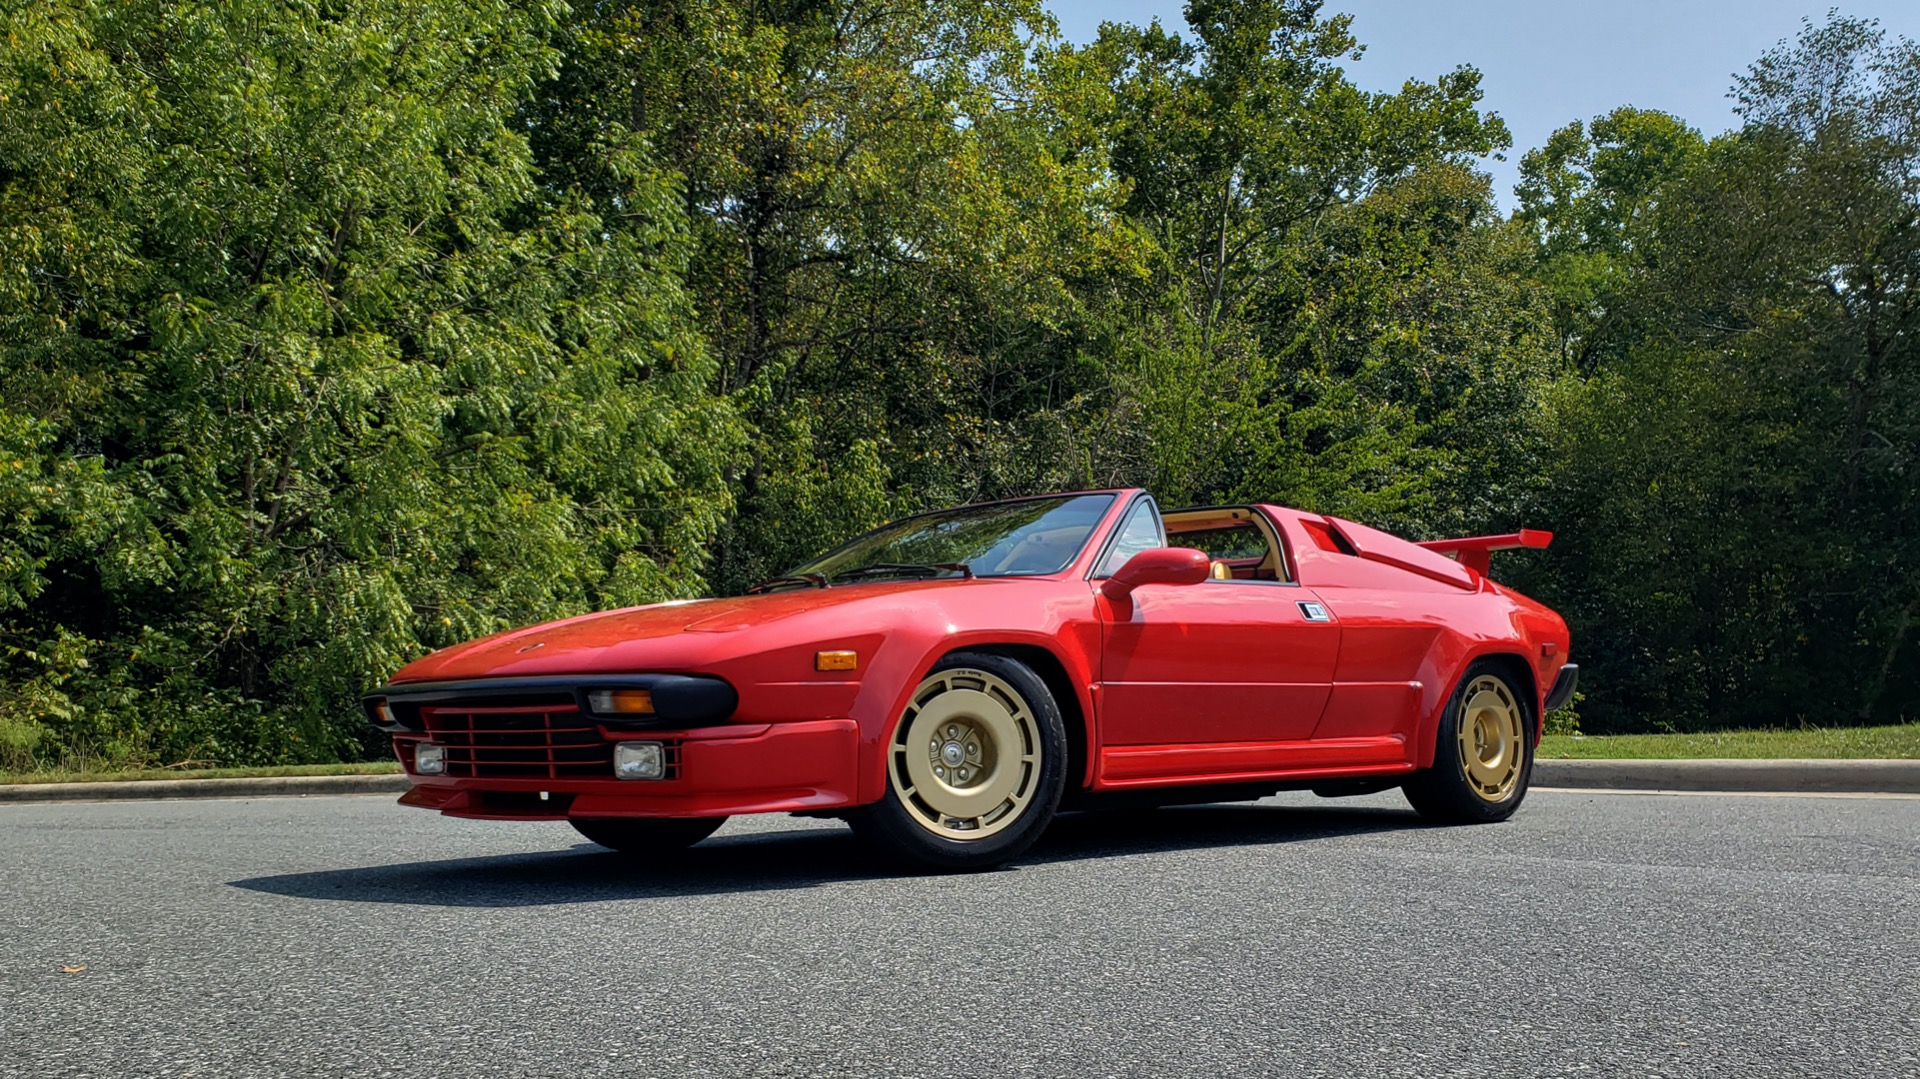 Used 1988 Lamborghini Jalpa 3.5 / 5-Speed Man / Low Miles / Excellent Condition for sale $108,995 at Formula Imports in Charlotte NC 28227 20